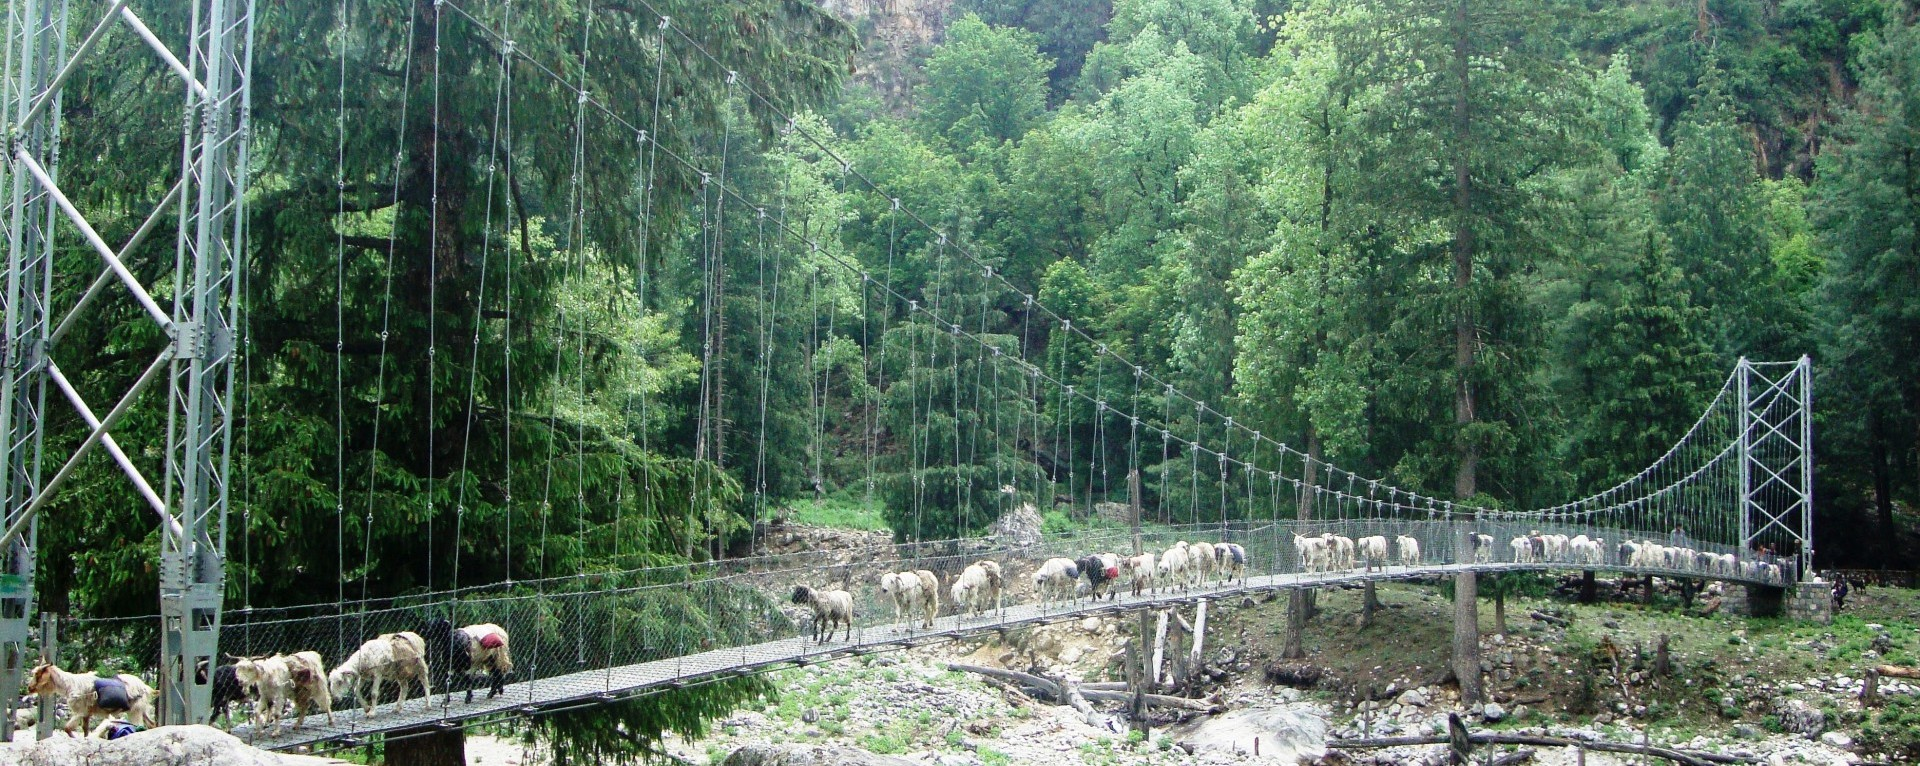 The sheep caravan crossing the suspension bridge.